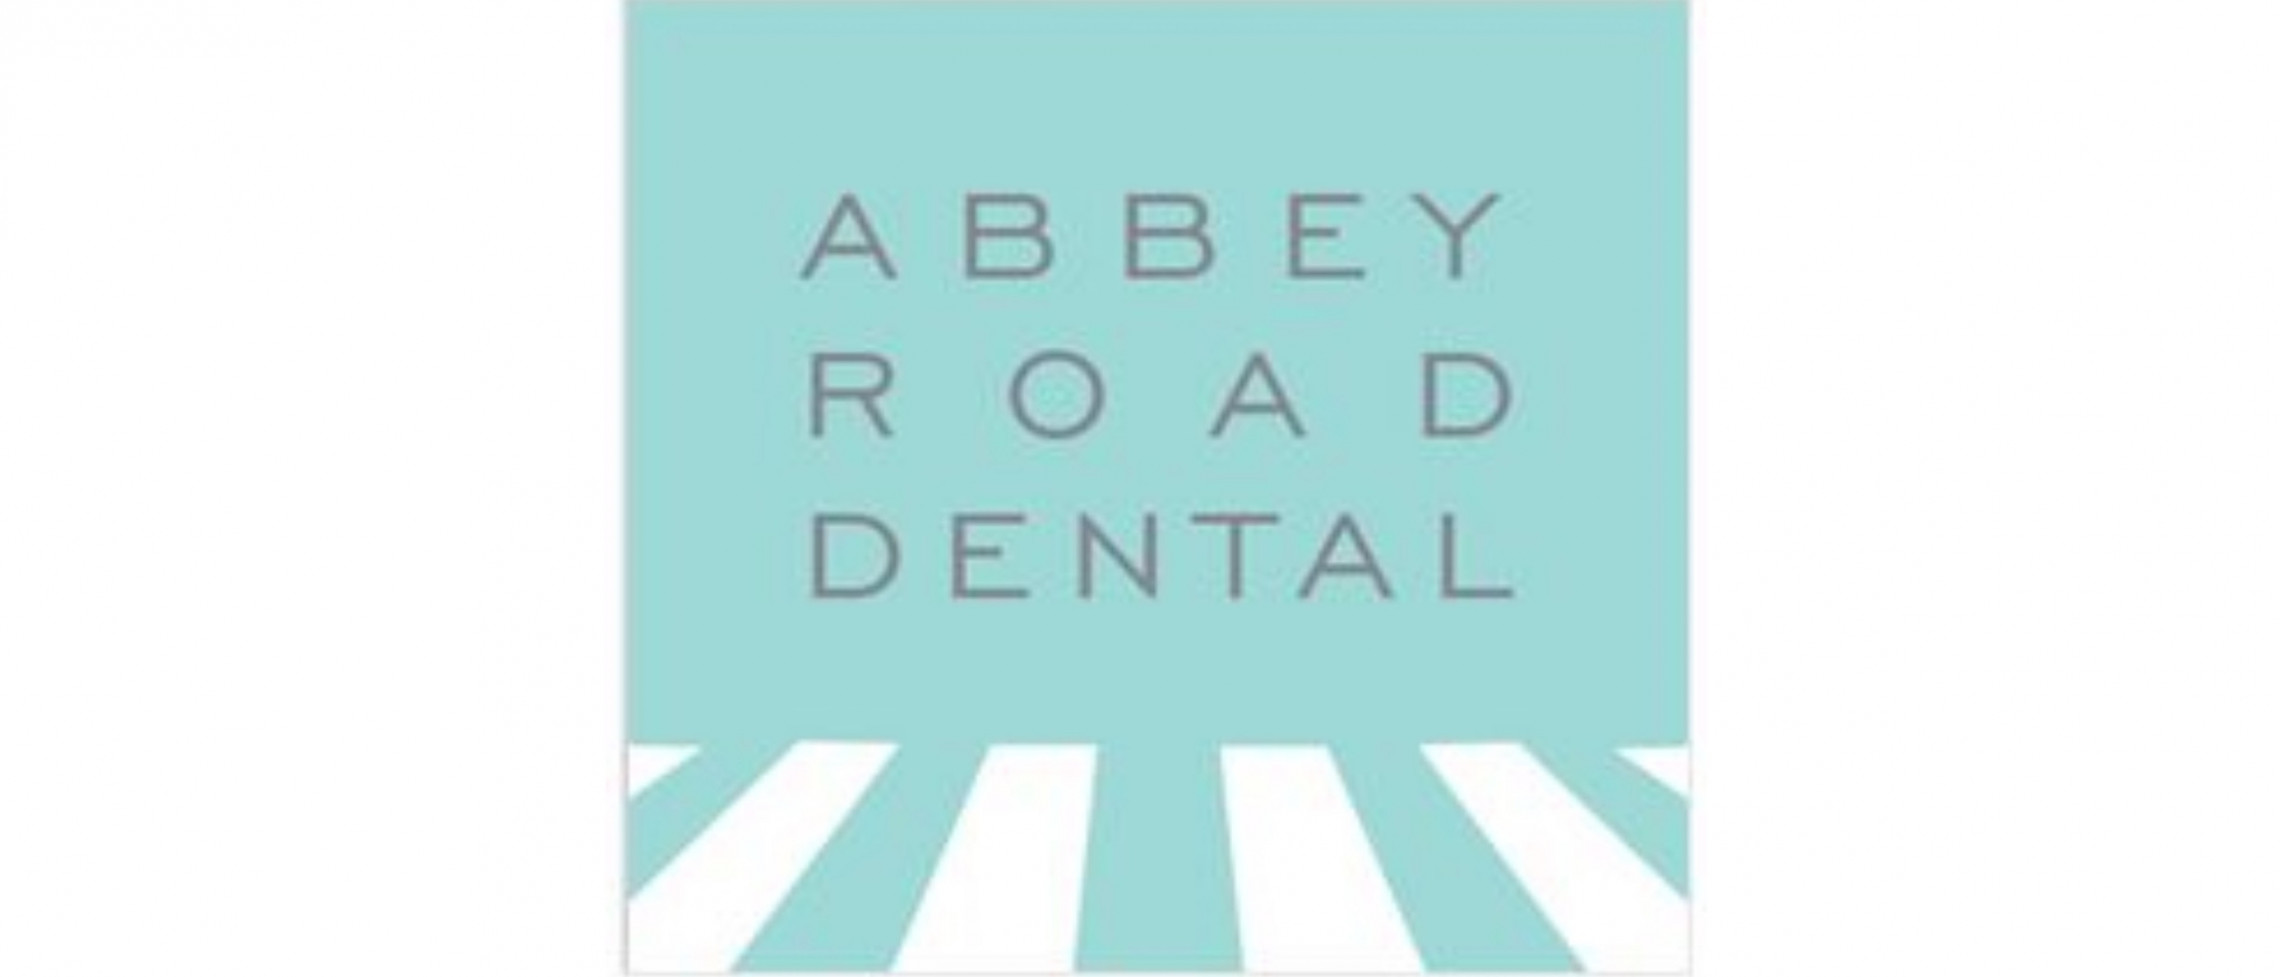 Abbey Road Dental